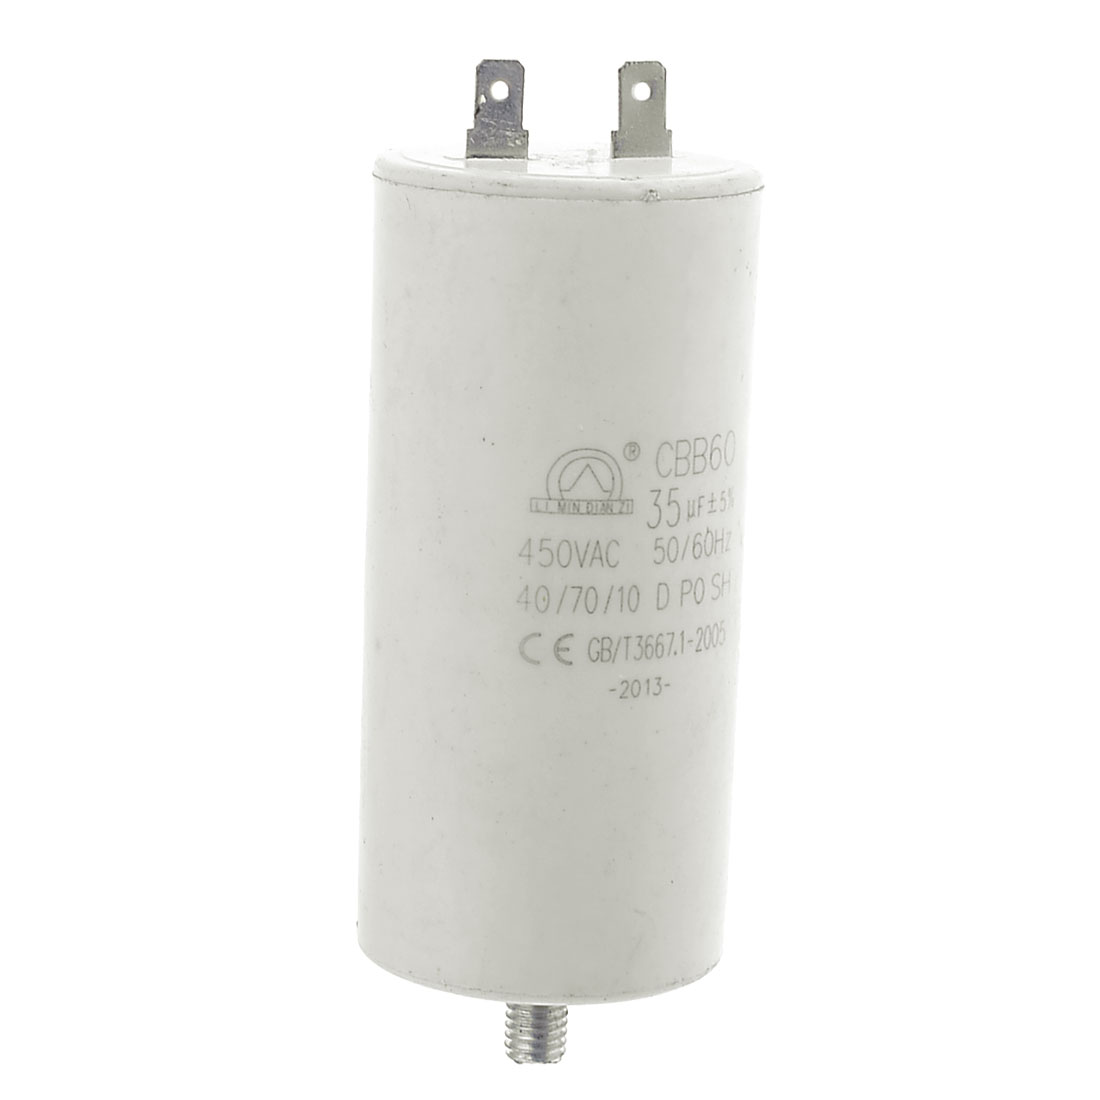 CBB60 35uF 450VAC Screw Base Aluminum Electrolytic Motor Capacitor